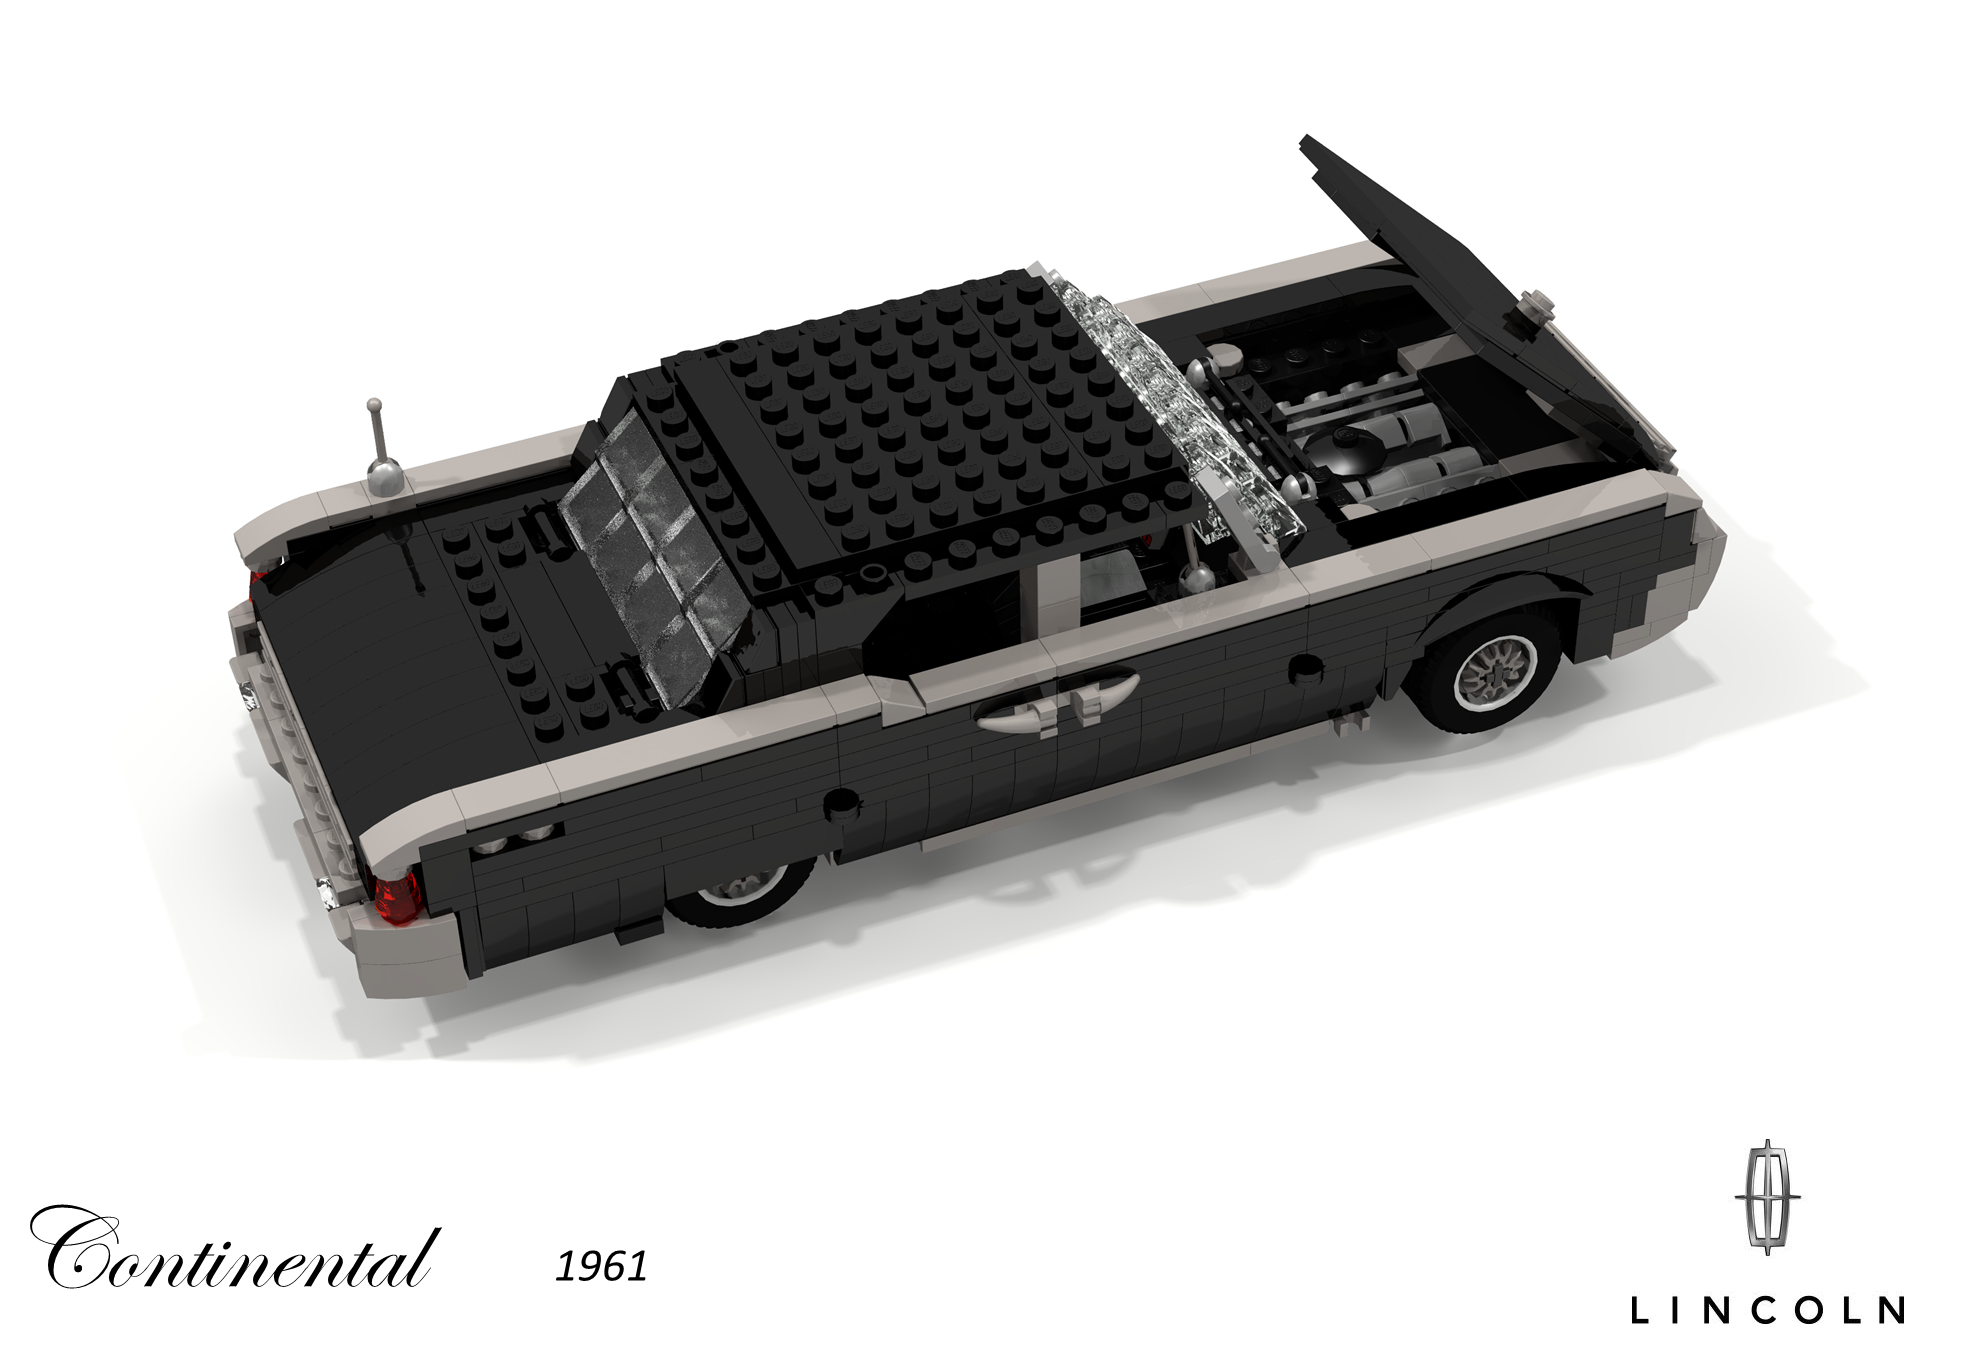 lincoln_1961_continental_06.png